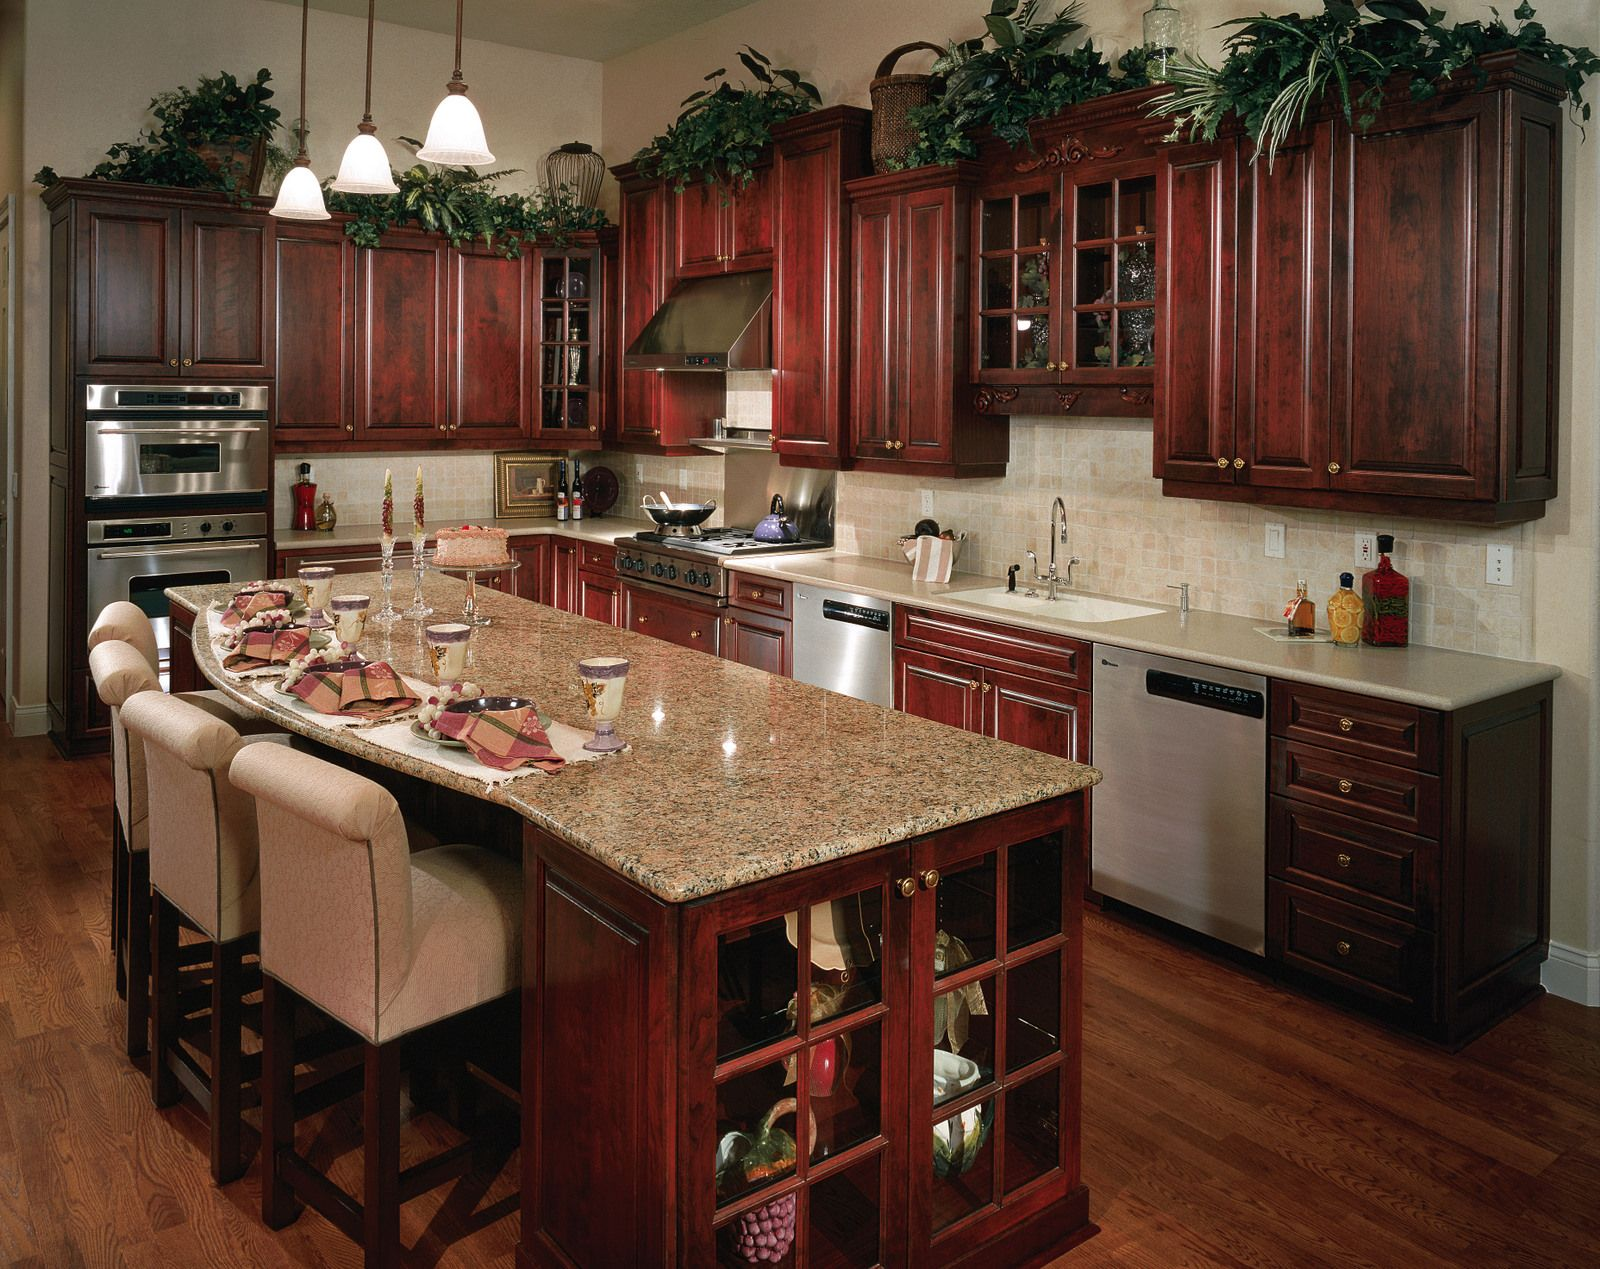 dark cabinets and dark floors oceanside cabinets llc palm bay fl - Kitchen Designs Dark Cabinets